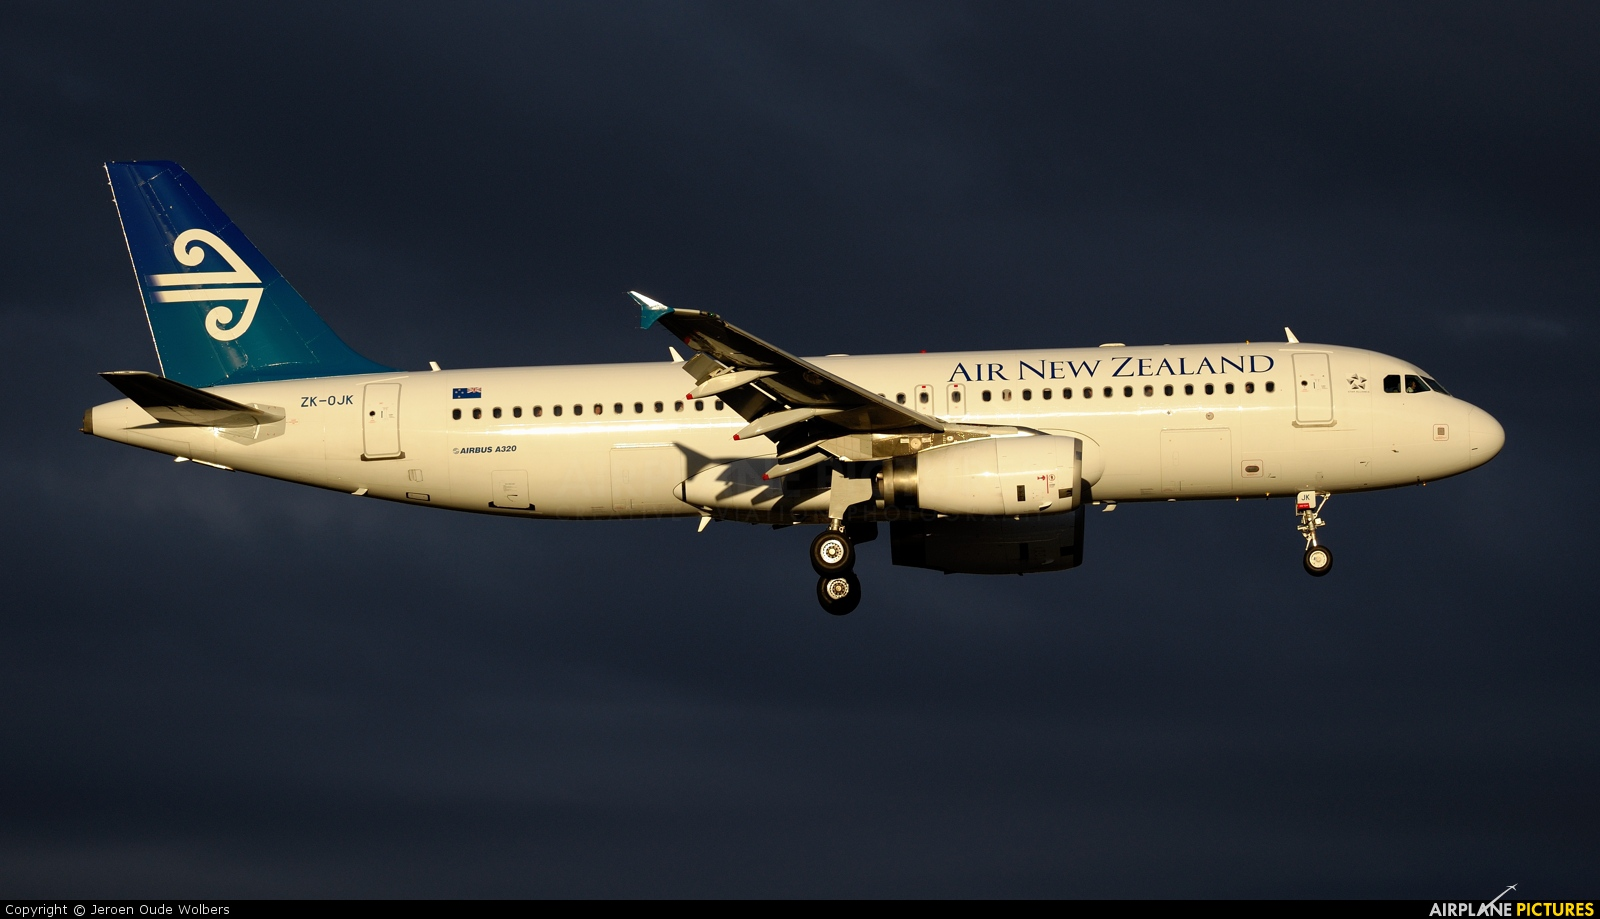 Air New Zealand ZK-OJK aircraft at Melbourne Intl, VIC